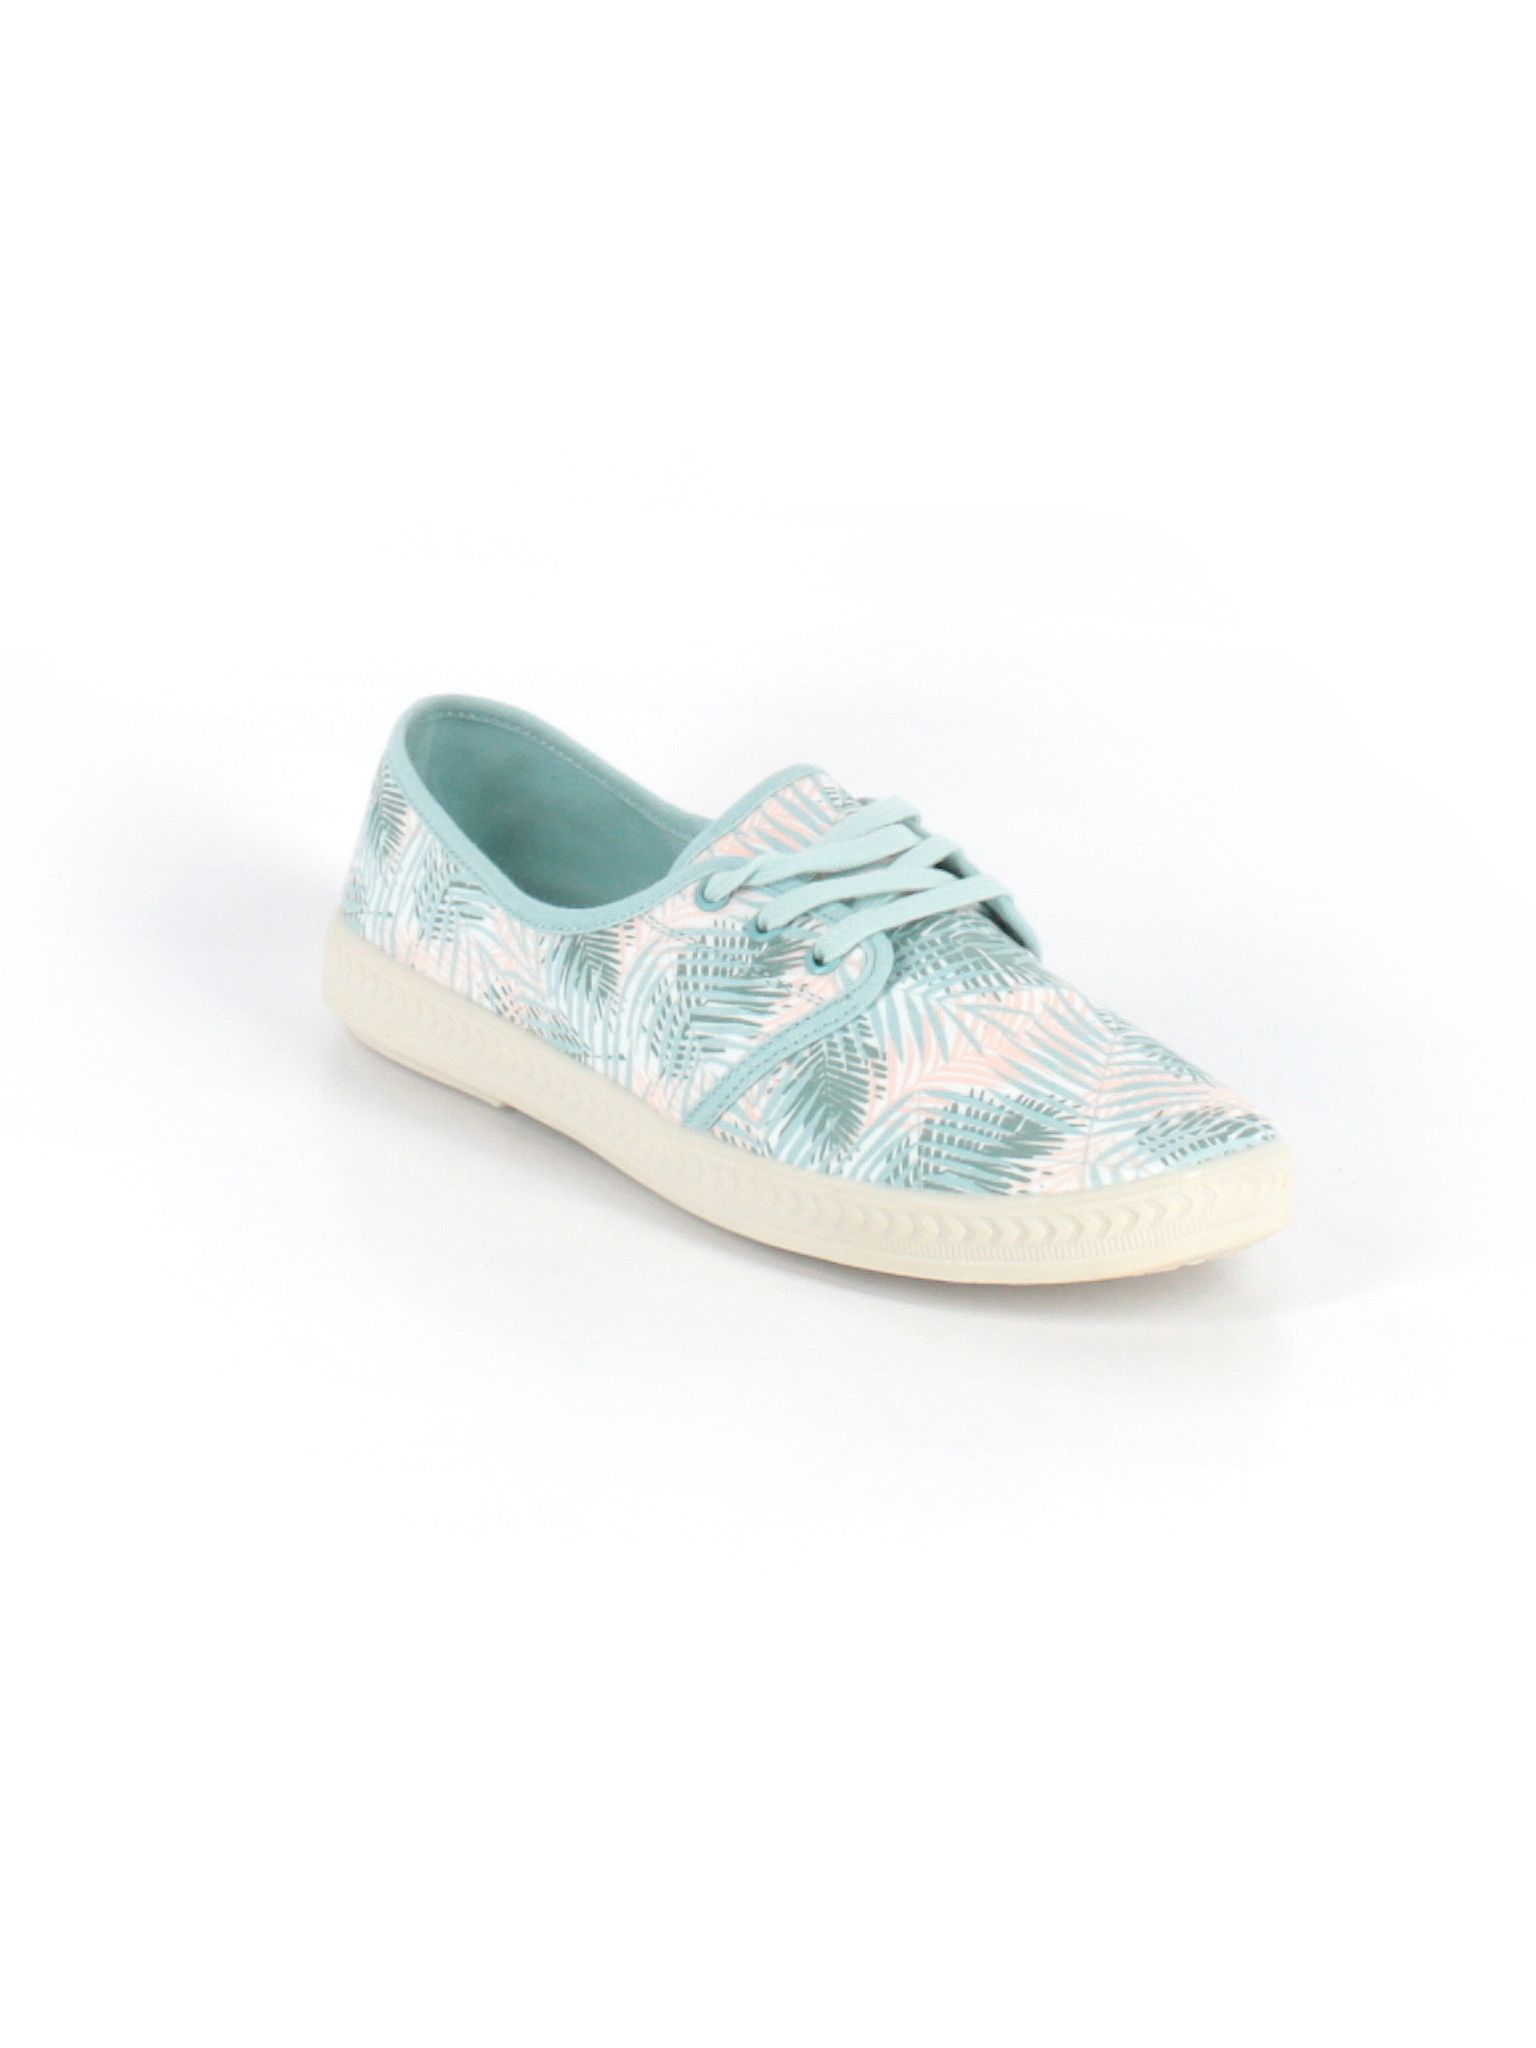 Womens Rocket Dog Light Blue Check Sneakers NEW!